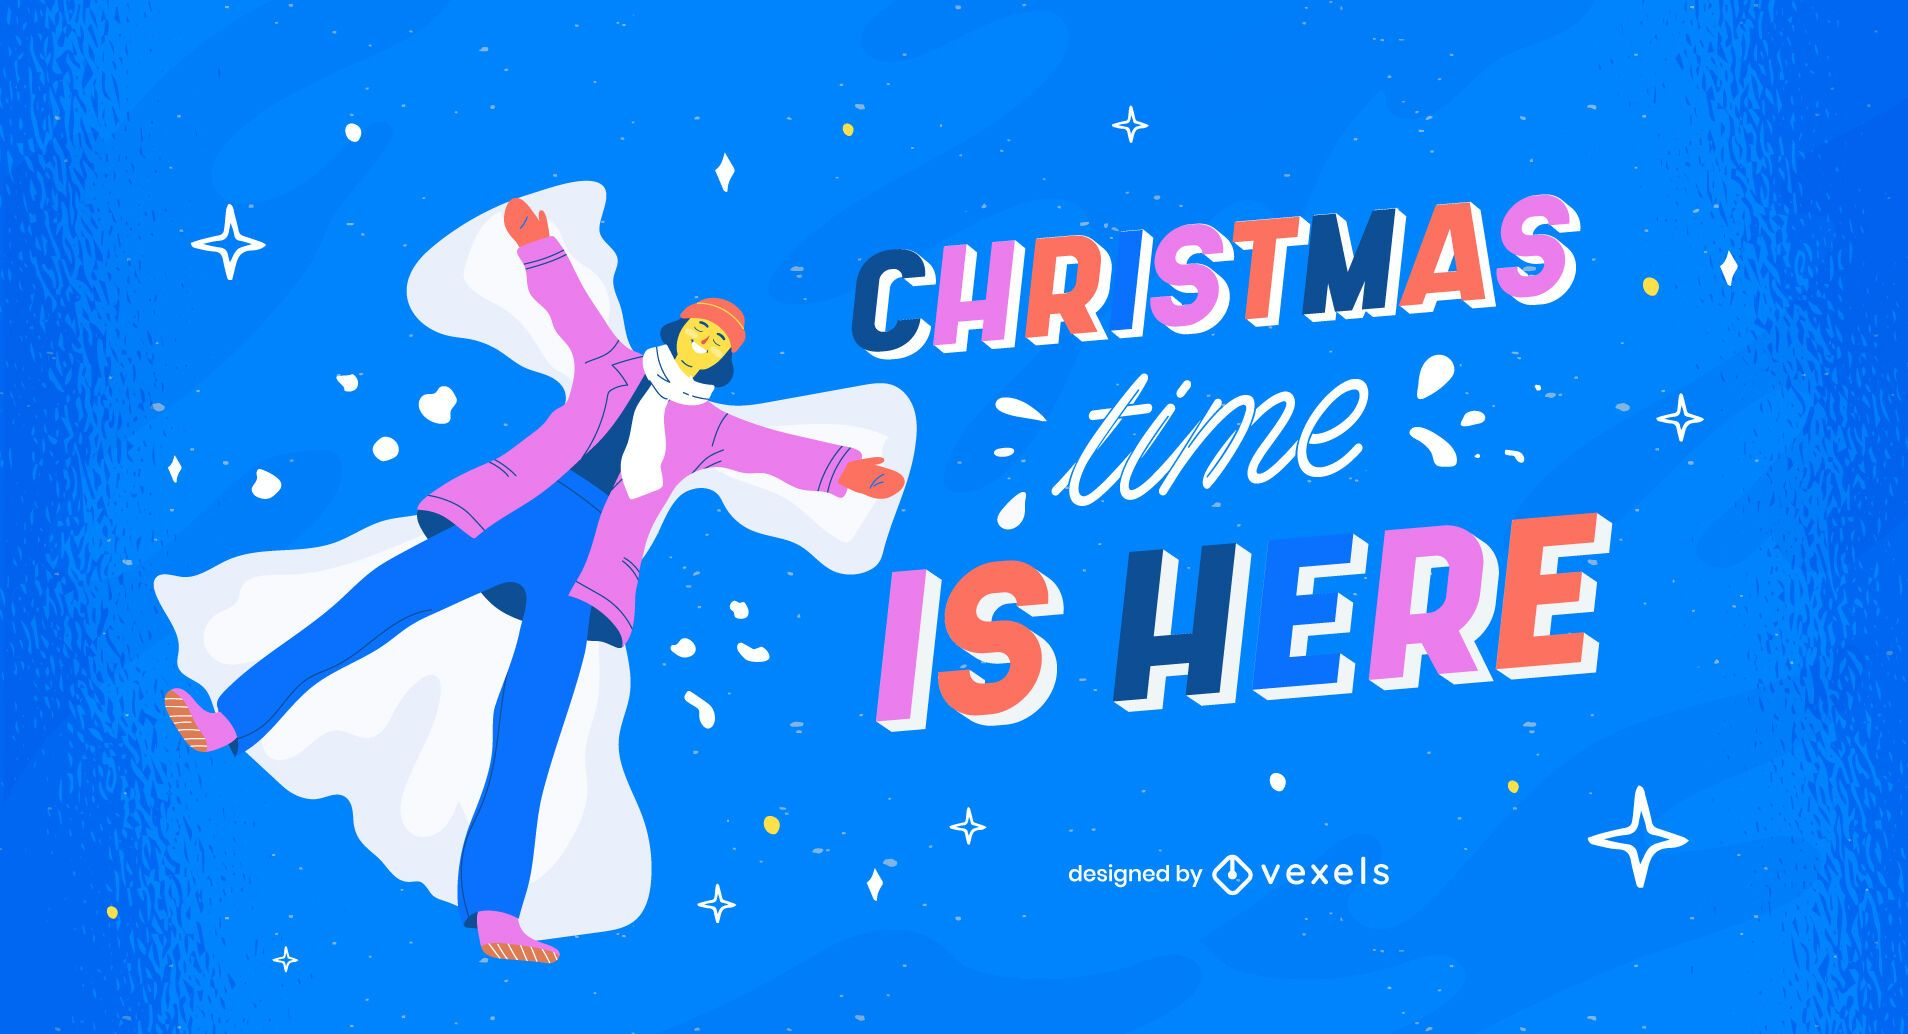 Christmas time is here illustration